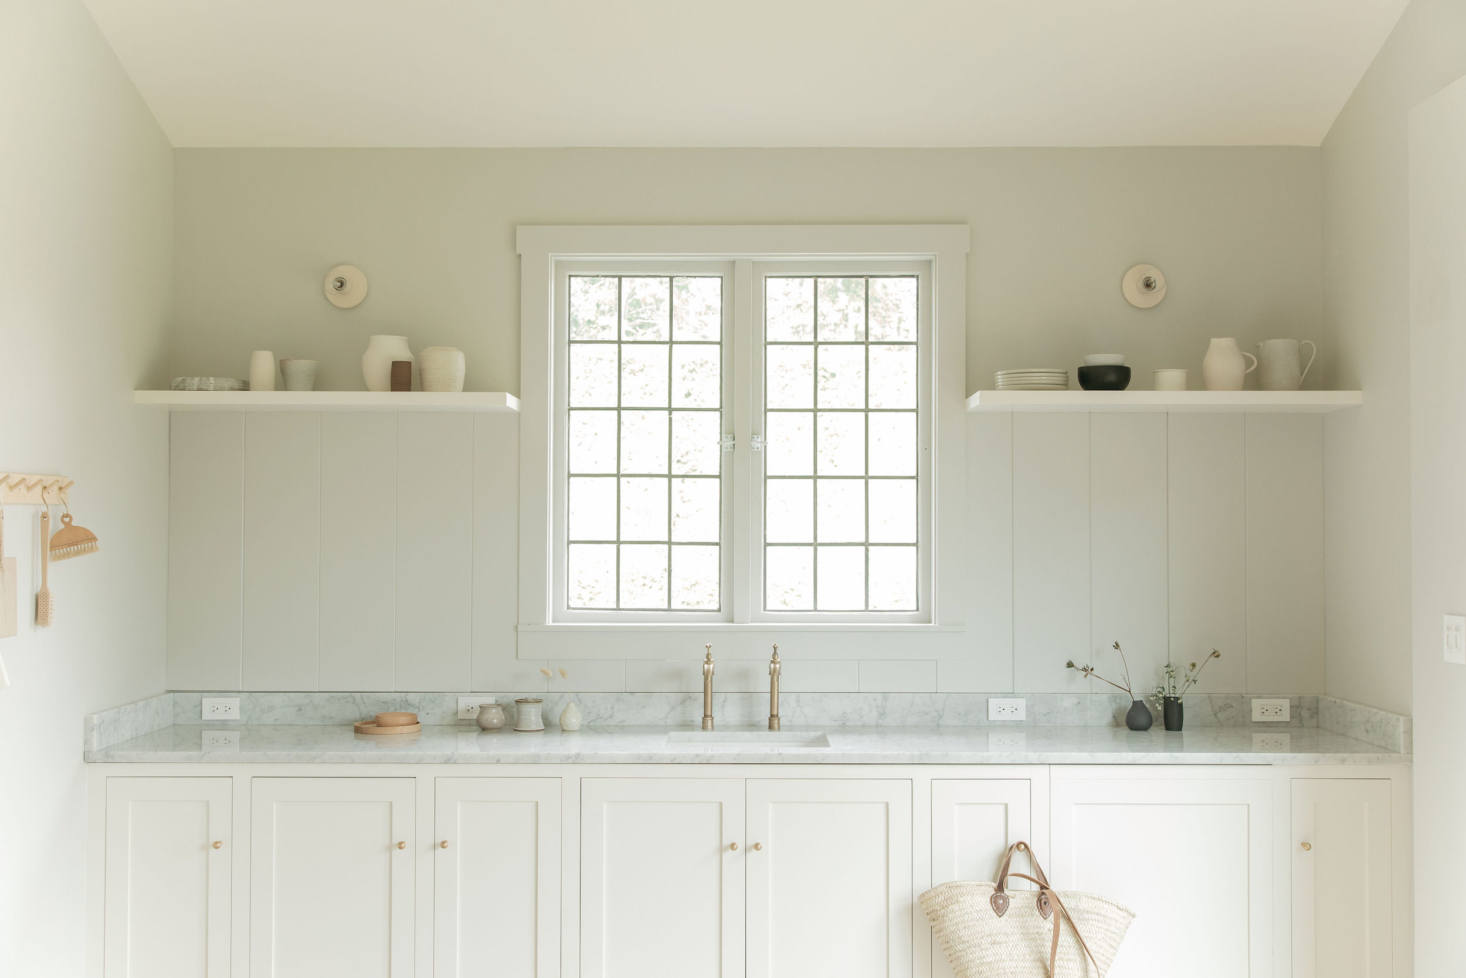 Kitchen of the Week: A Photographer's Light-Flooded Shaker-Scandi Carriage Studio